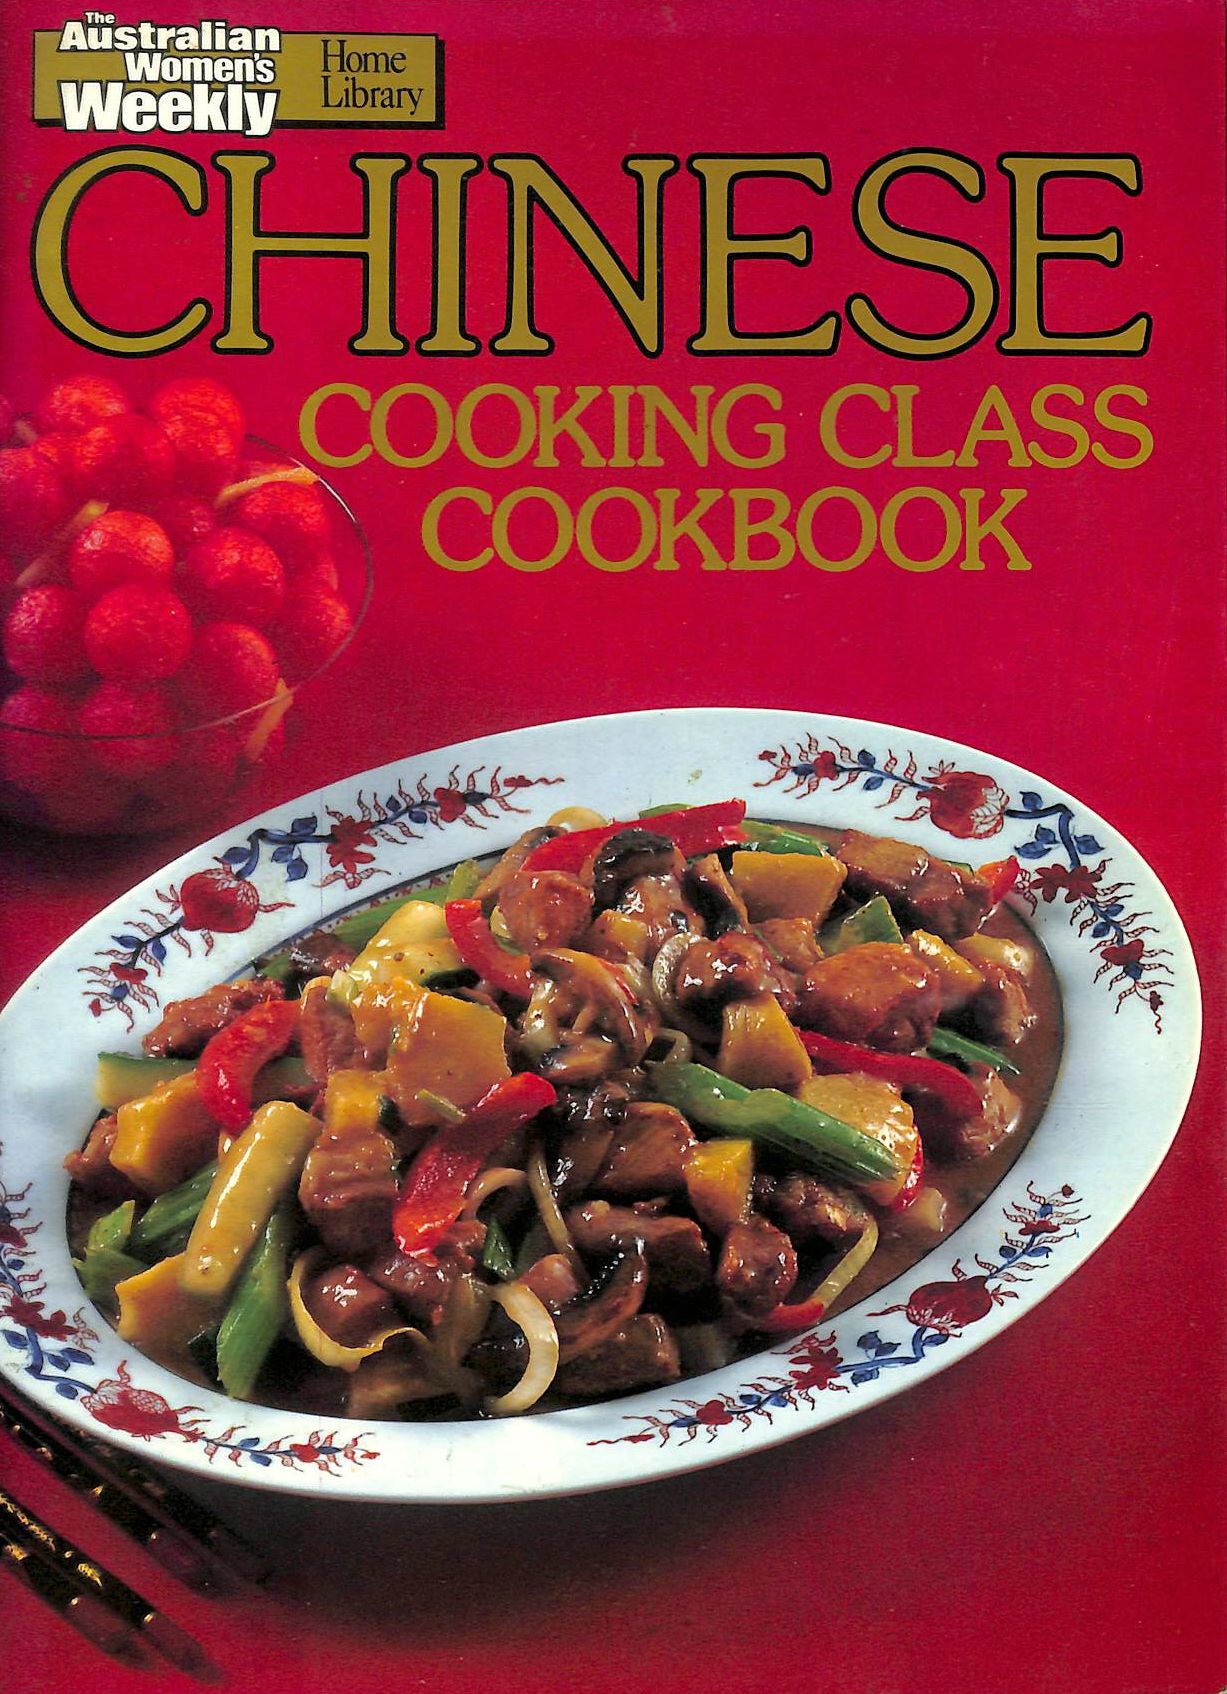 Image for Chinese Cooking Class Cookbook (Australian Women's Weekly Home Library)